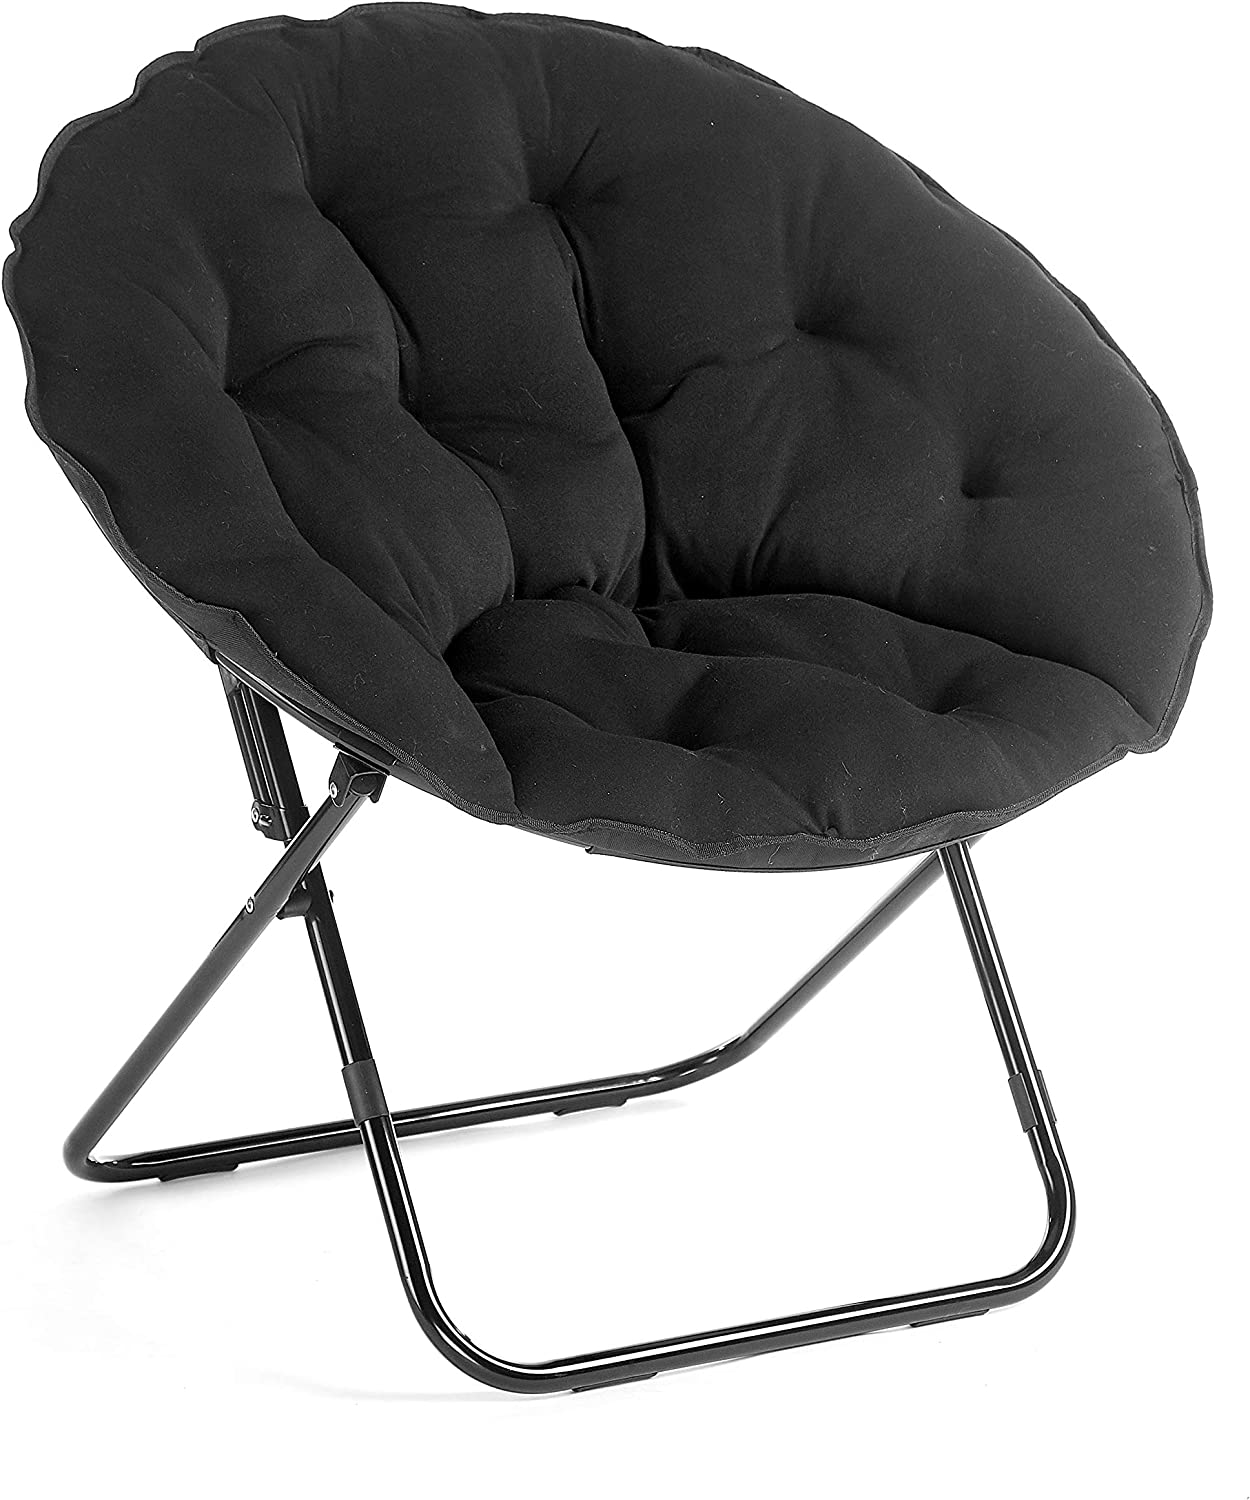 "Urban Shop Folding Saucer Chair with Metal Frame, Black Jersey, 30"" Frame"